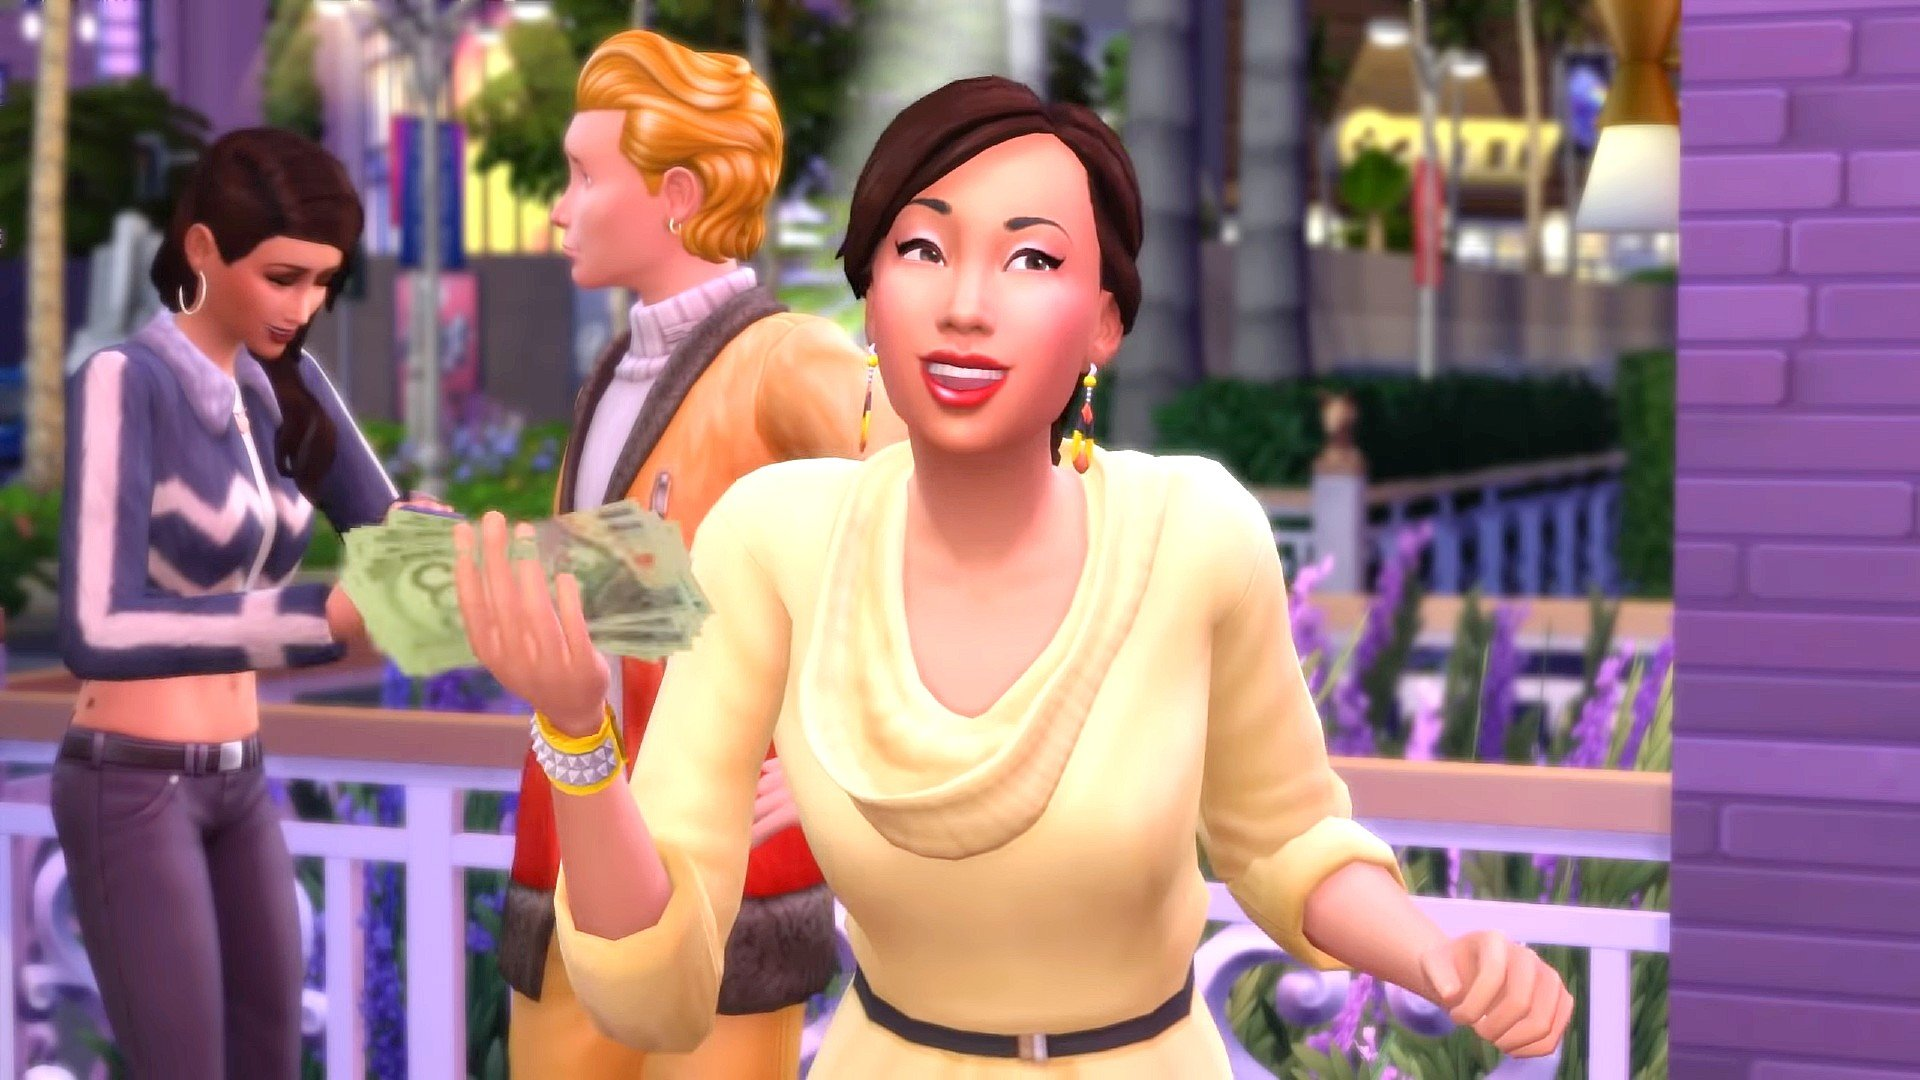 The Sims 5 Leaks- Game is in Early Development Stages